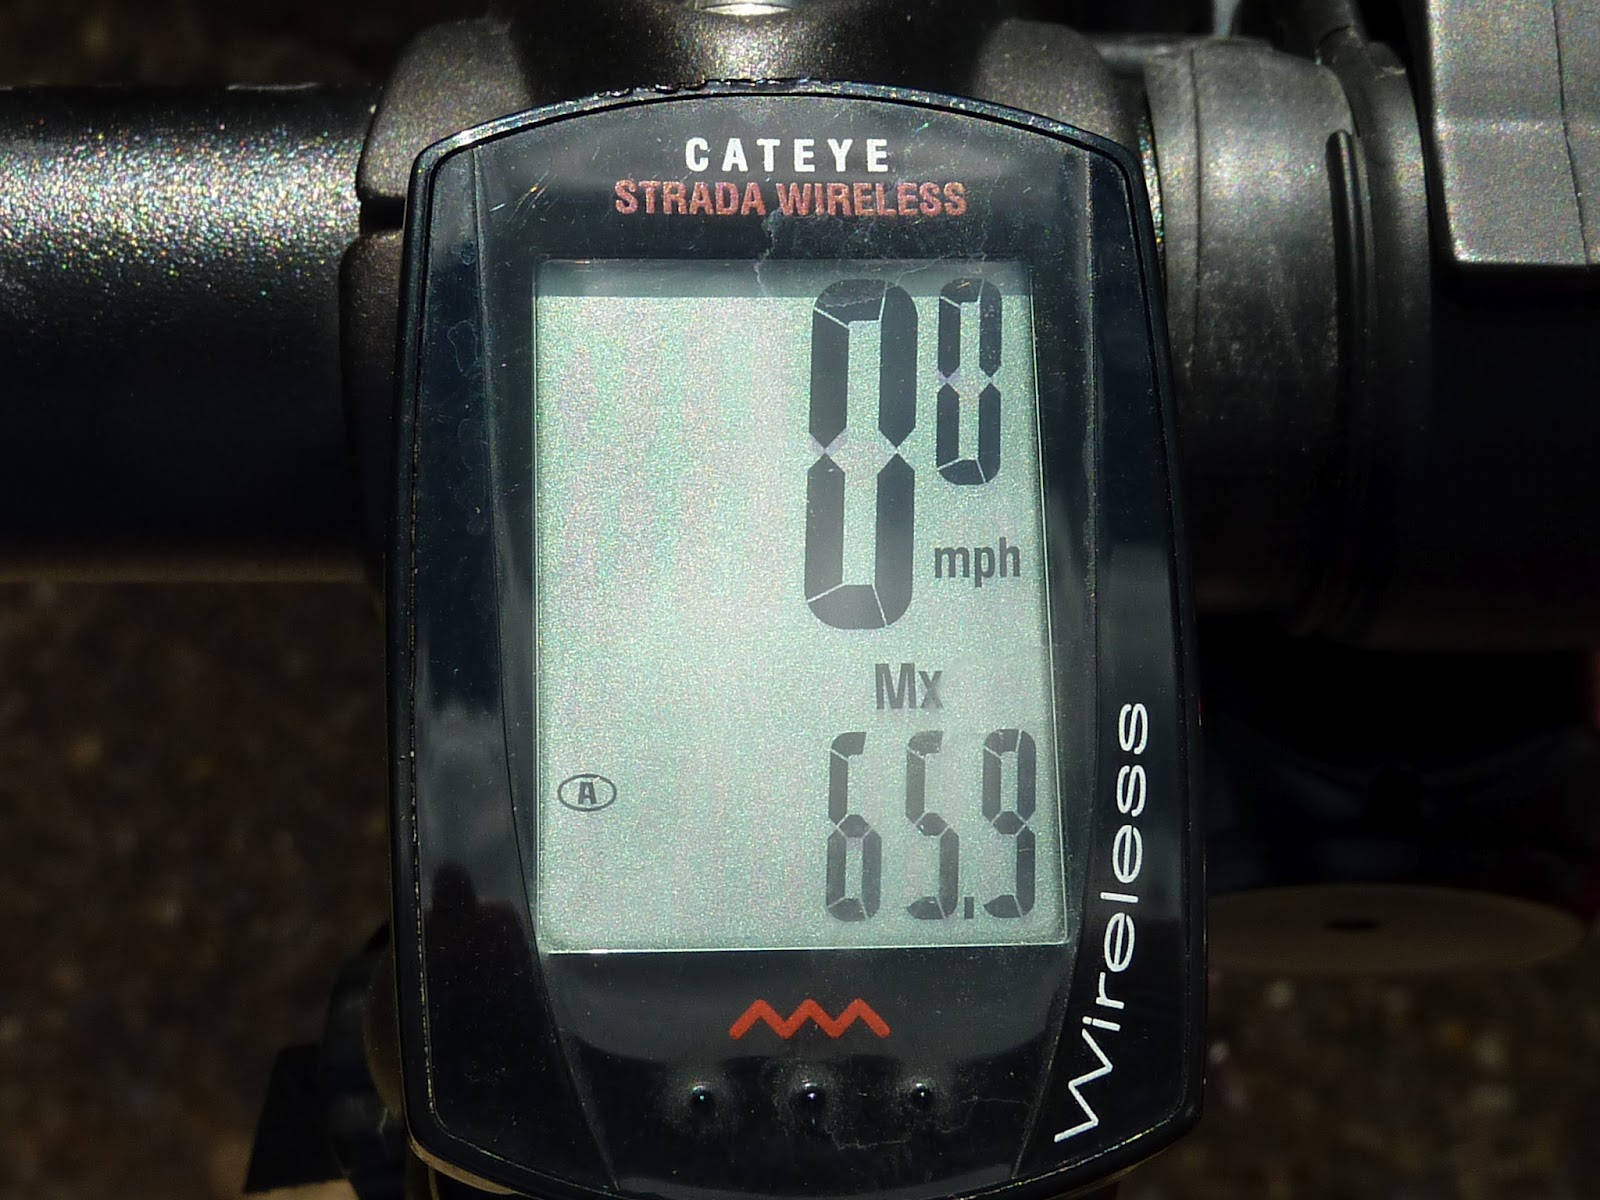 659mph And Time To Review Cateye Strada Wireless The Cycle Spidometer Cadence